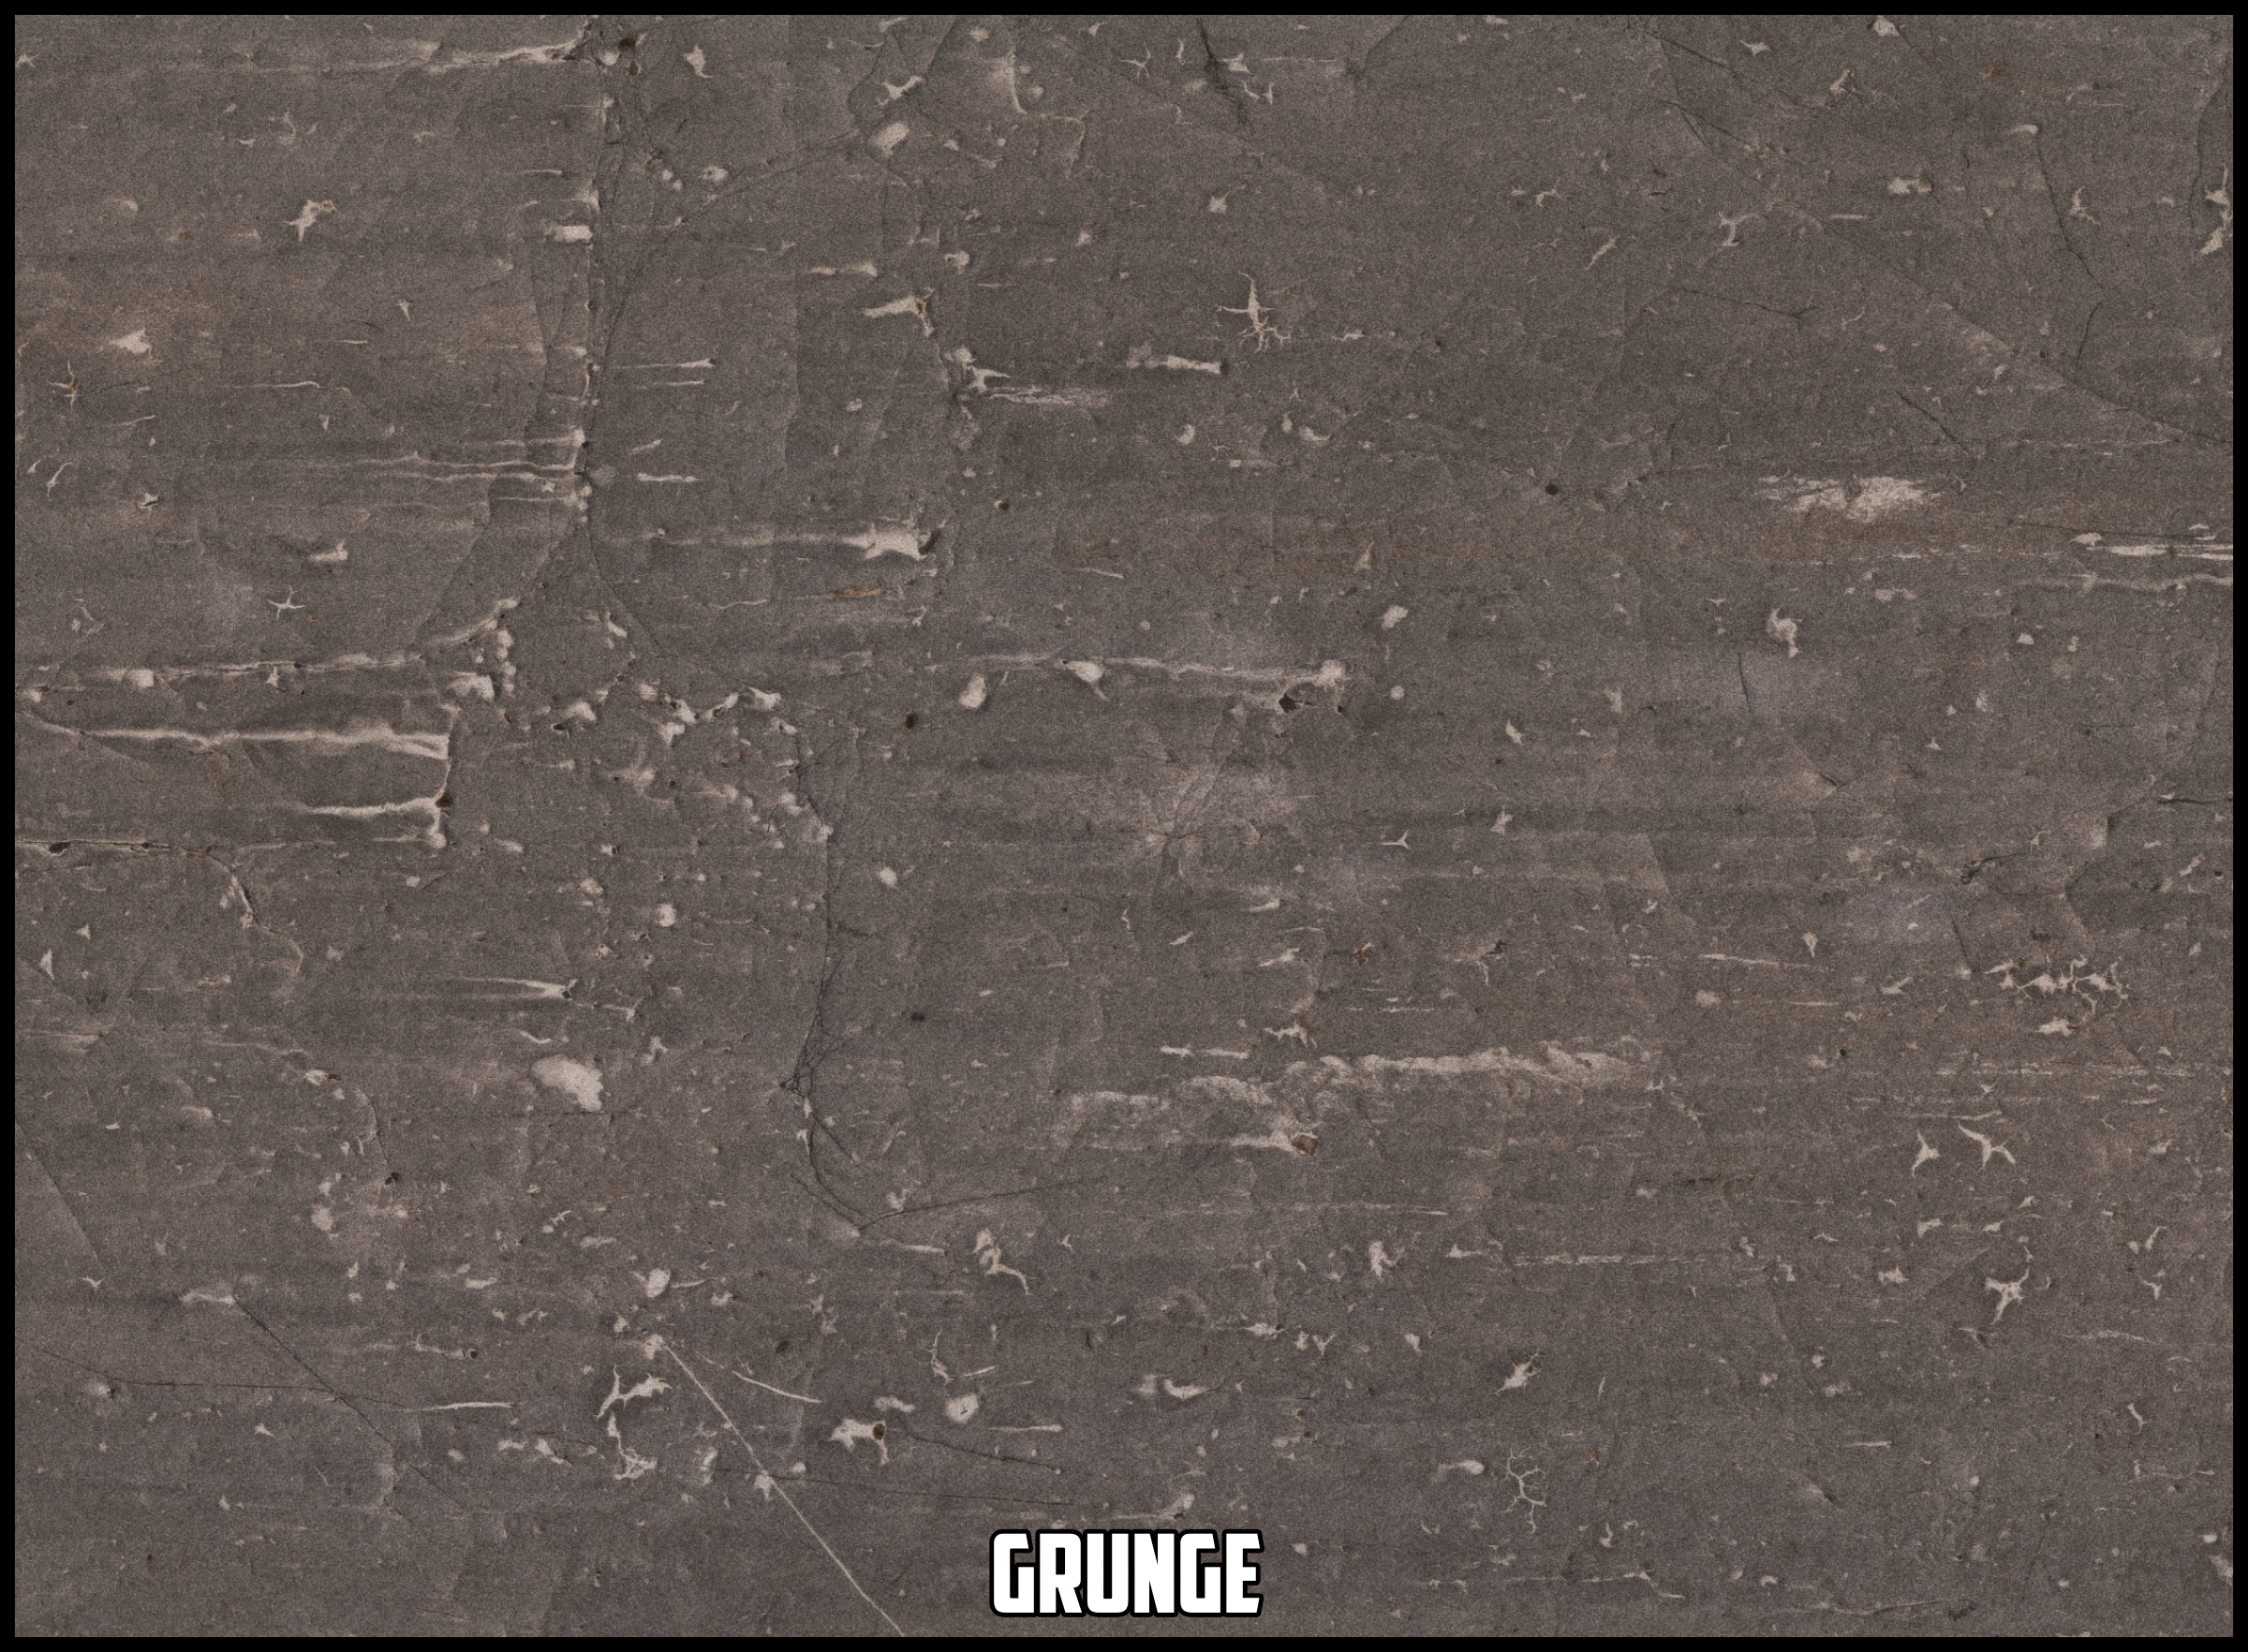 texture-grunge-example.png